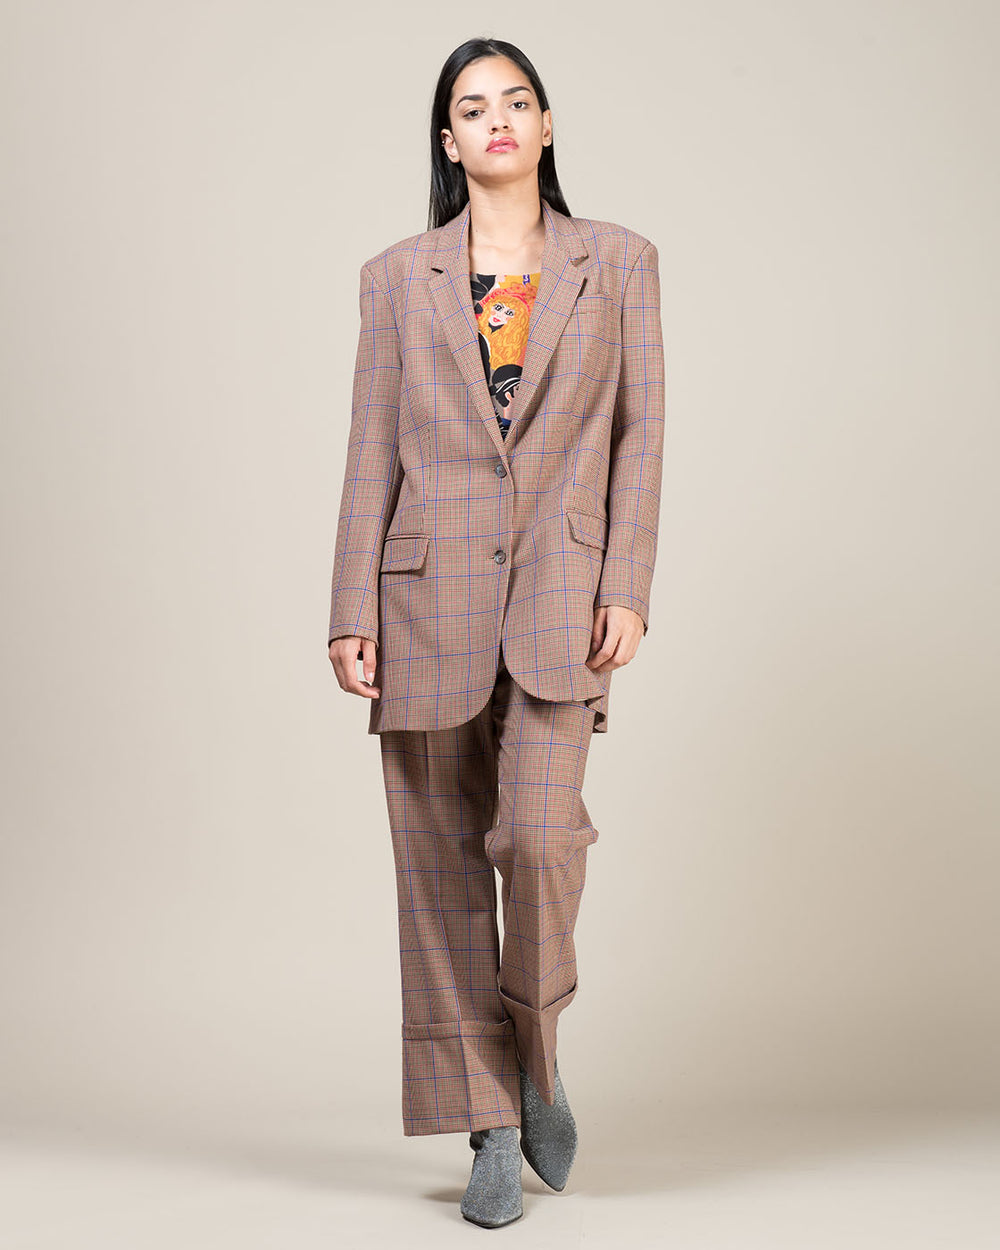 Women S Clothing And Accessories Italian Brands Online At Styloose